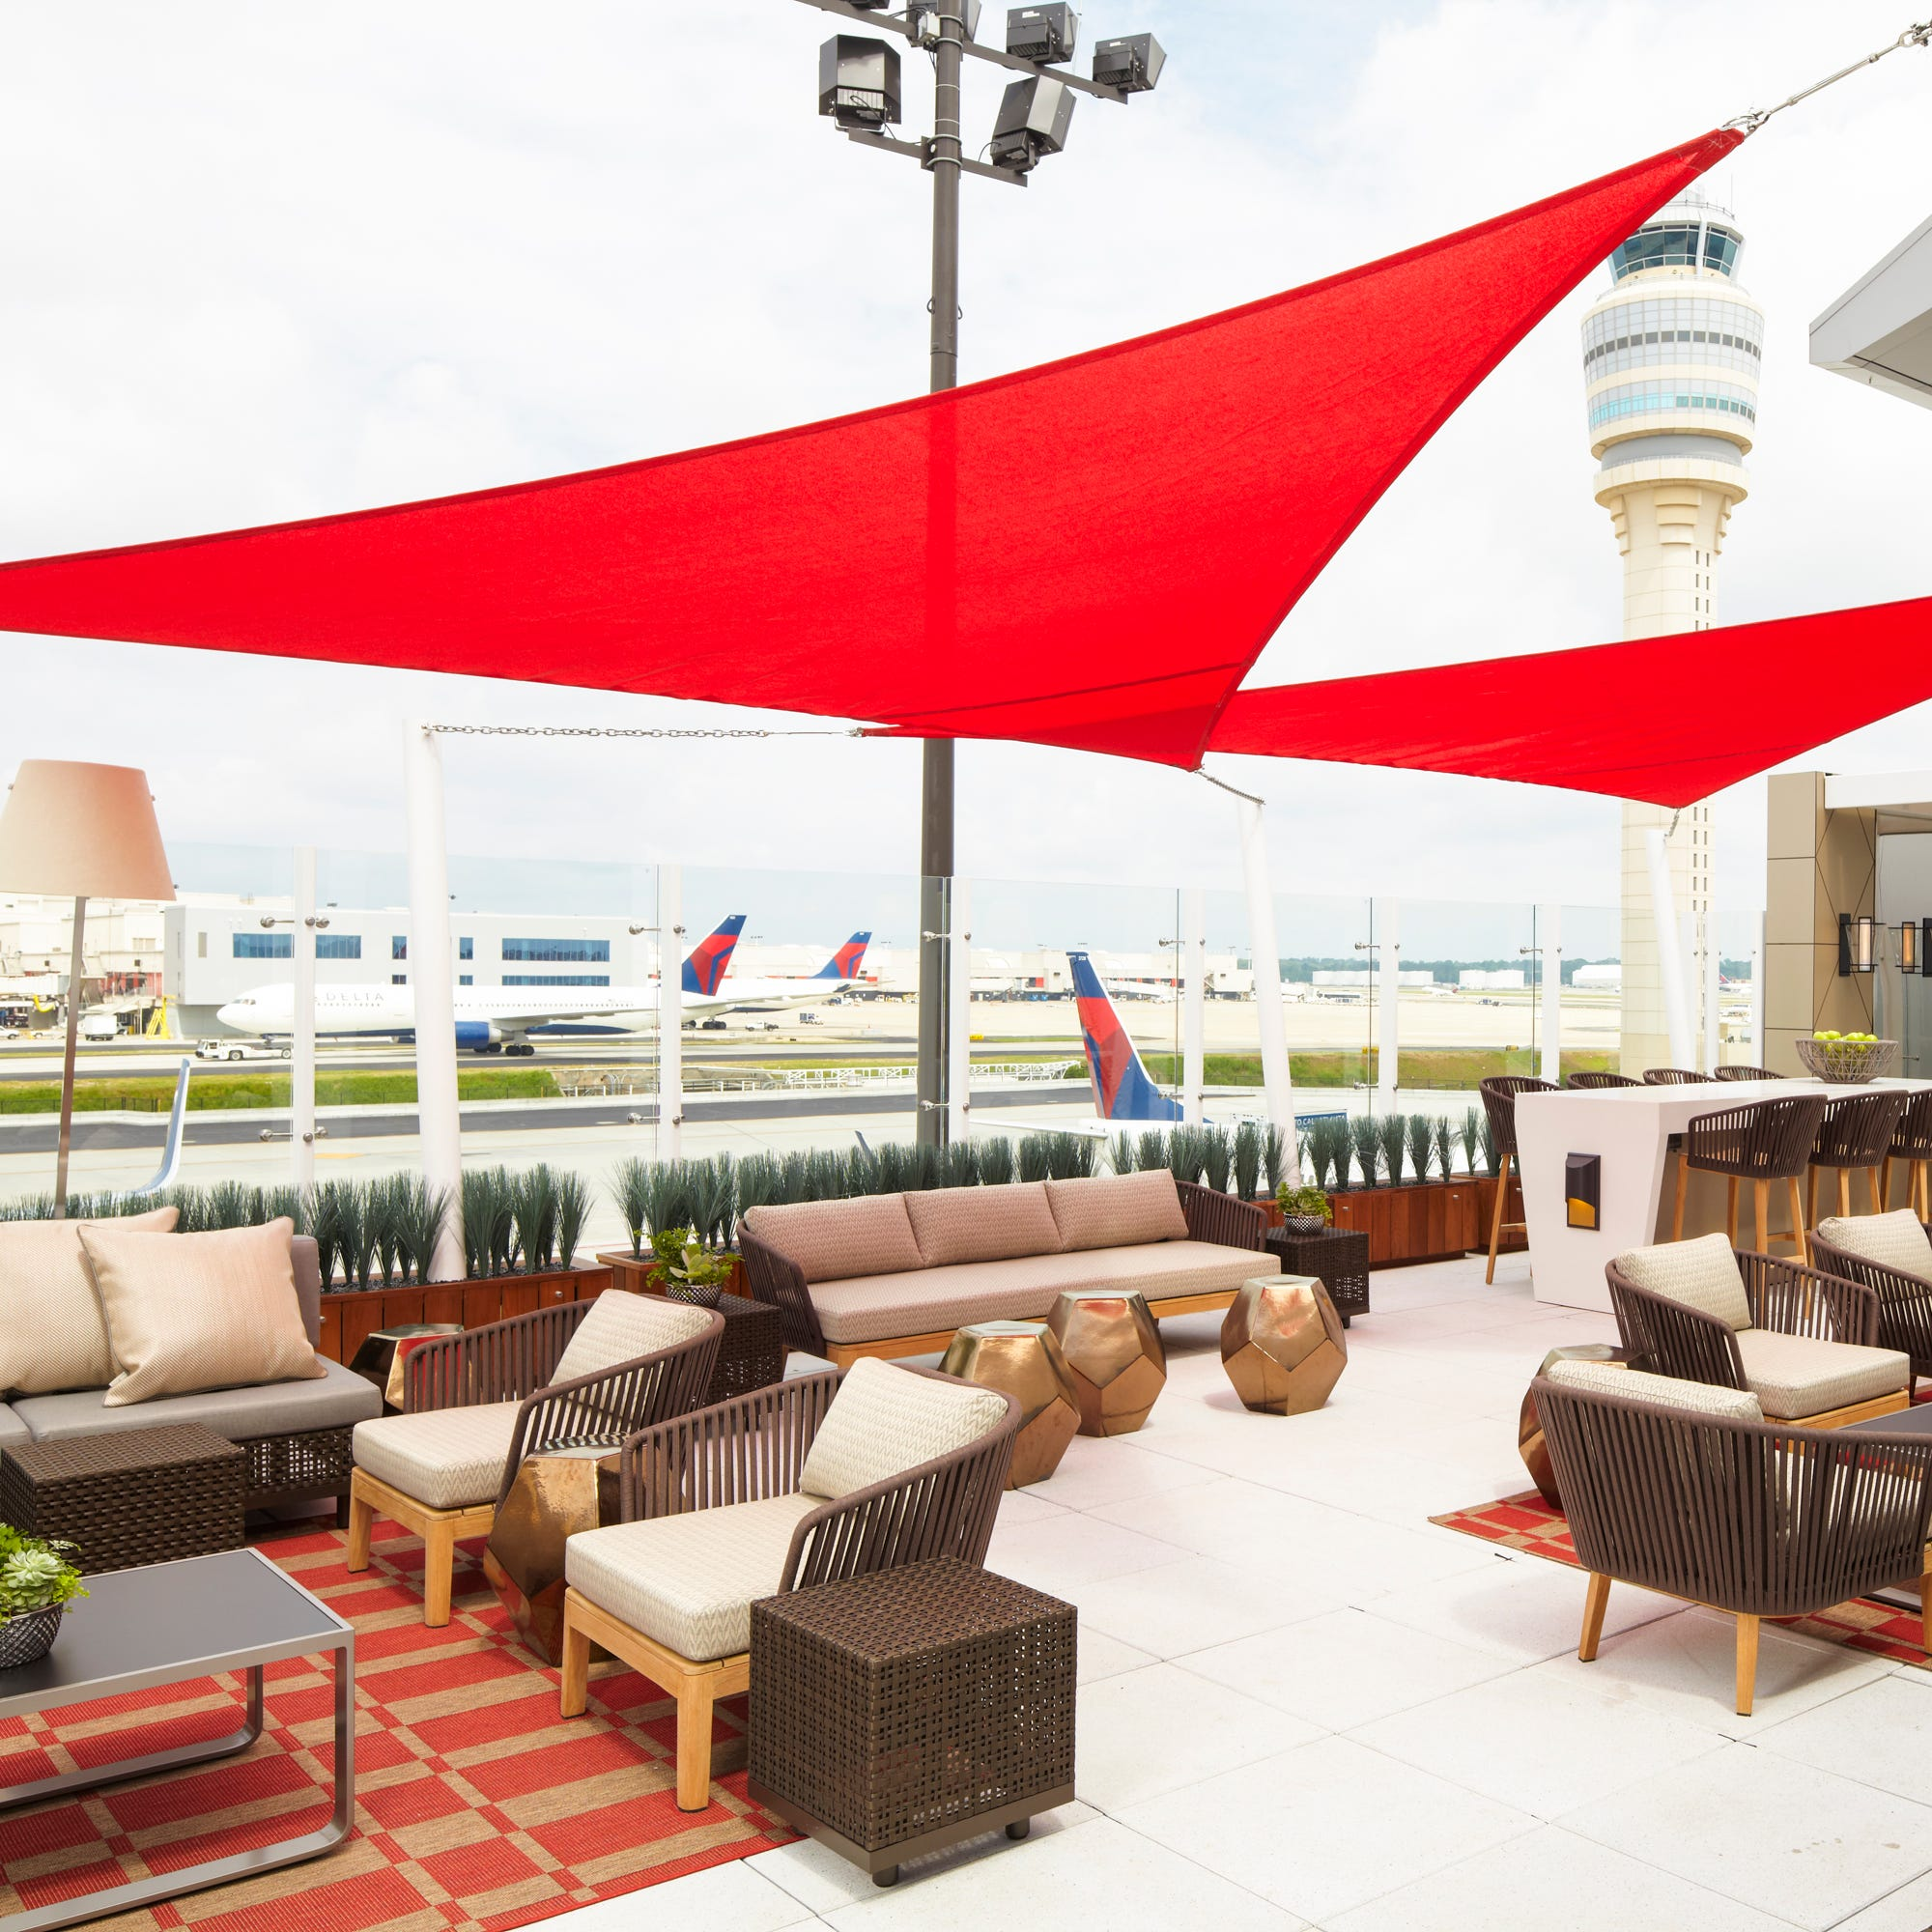 The deck at the Delta Sky Club at Hartsfield-Jackson Atlanta International Airport.